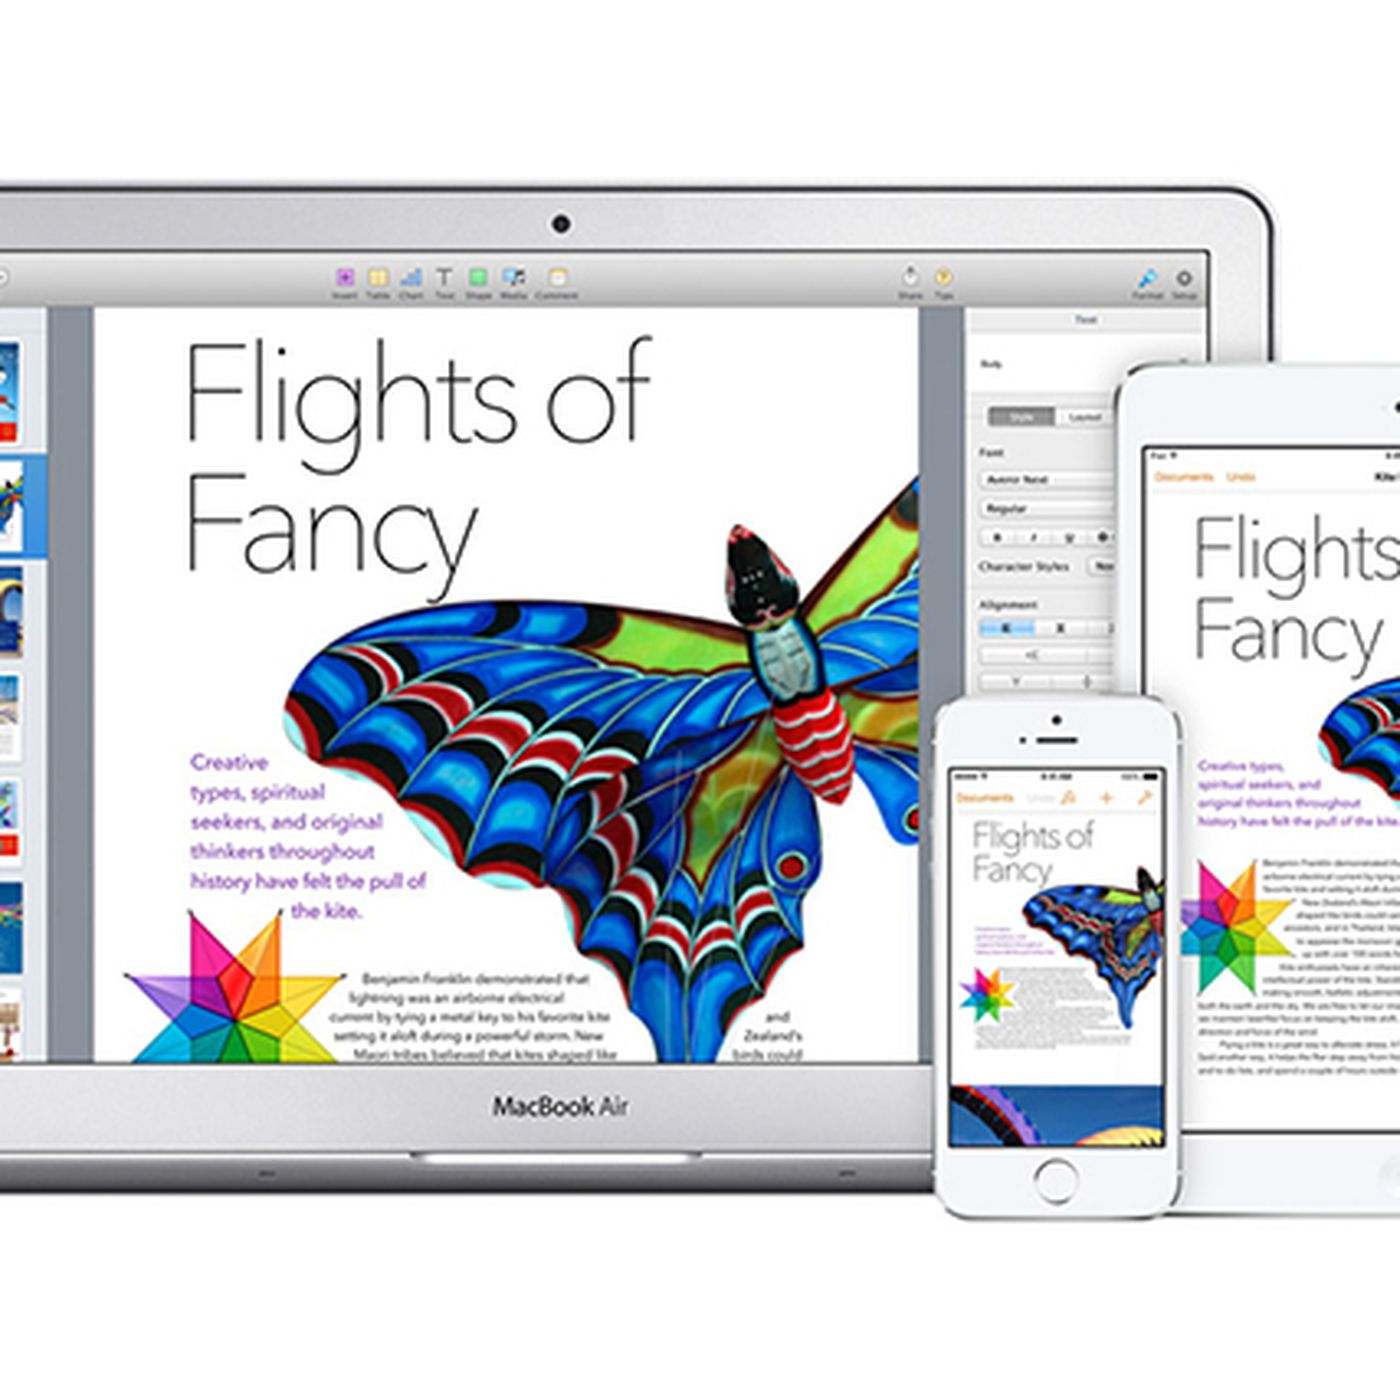 Apple's stripped-down iWork suite is free, but there's a cost - The